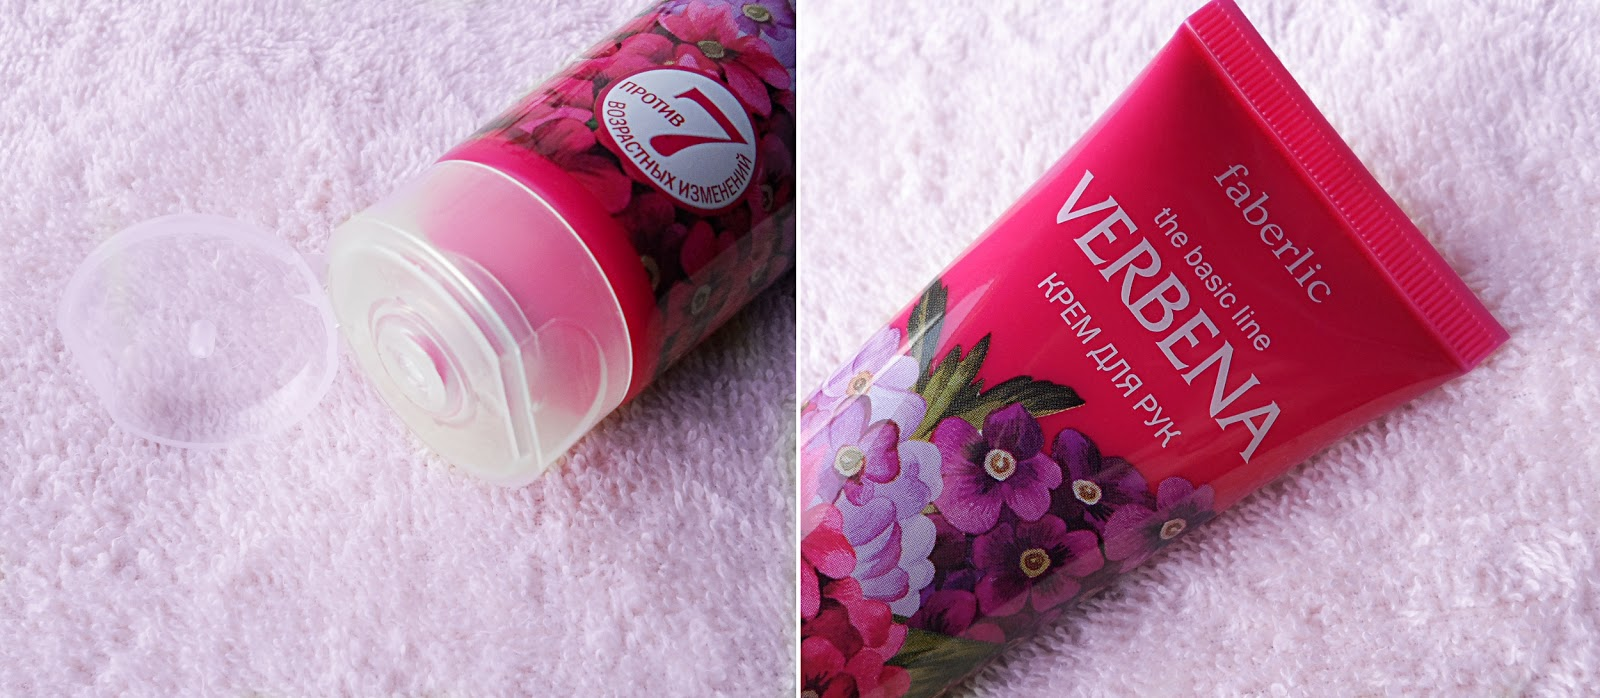 winter essentials hand cream review blogger faberlic cosmetics